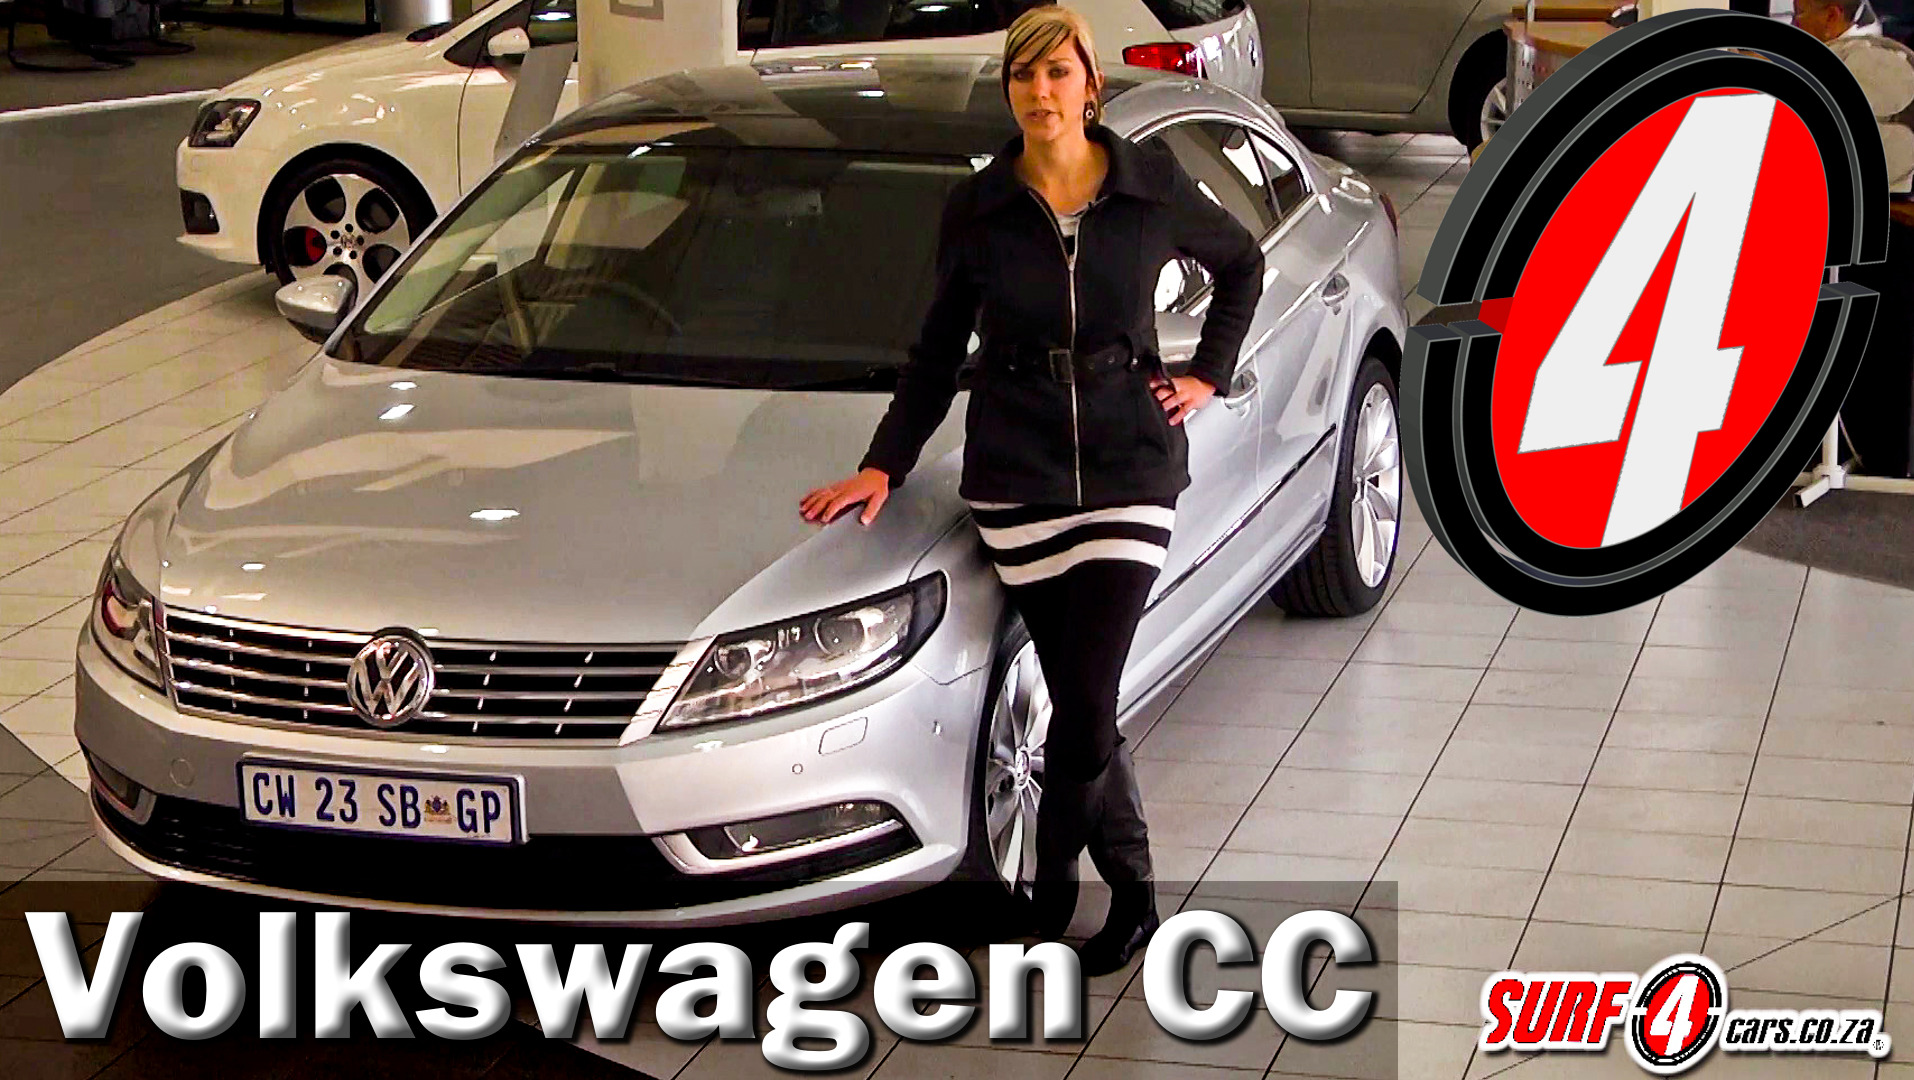 2014 Volkswagen CC | Used Car Review | Surf4cars